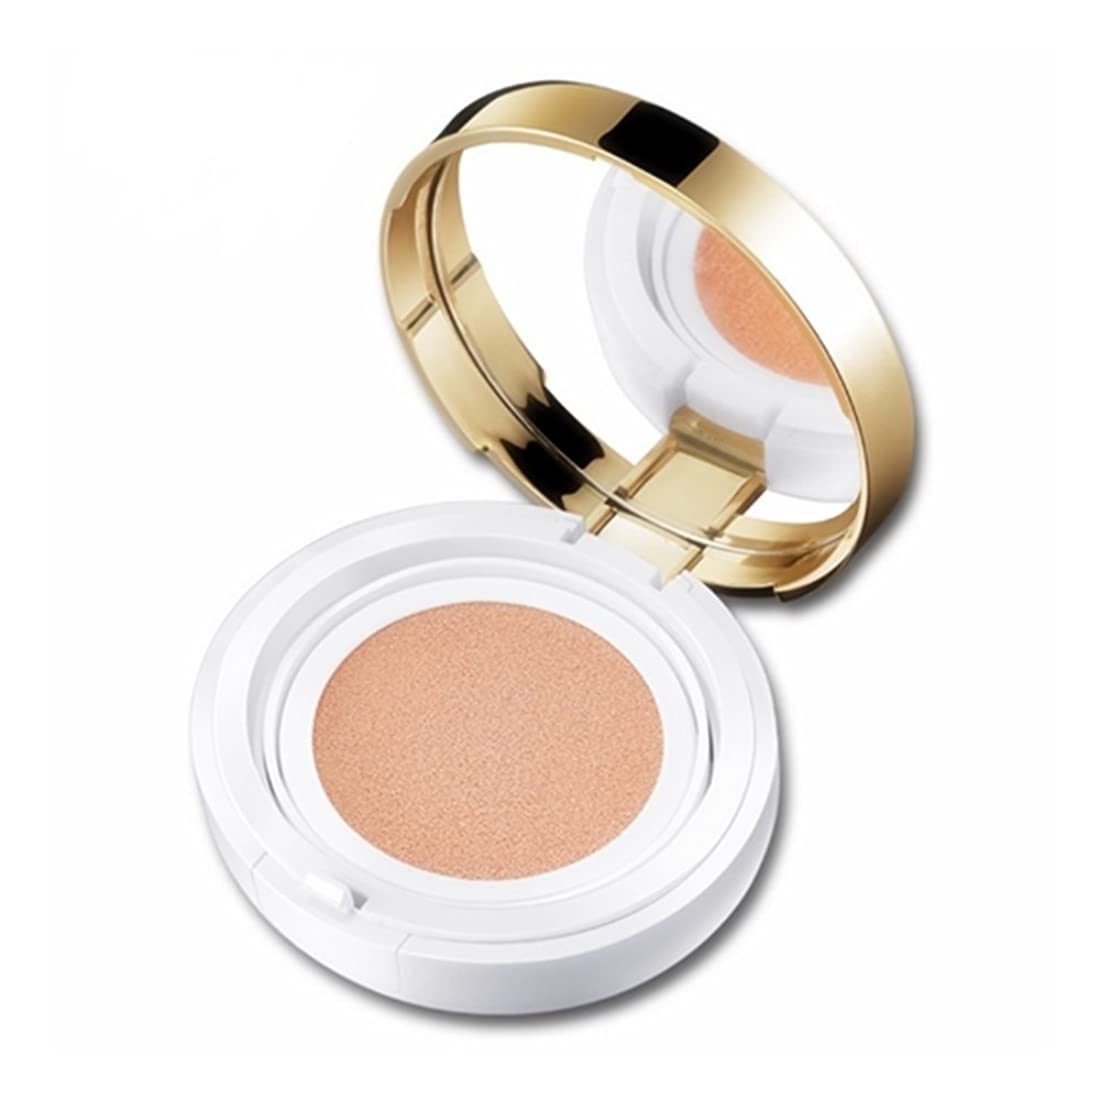 ダブル自分自身温帯Flawless Makeup Air Cushion BB Cream Moisturizing Natural Tone Bare Makeup Concealer Primer Color Foundation Cosmetics. (Ivory white#B01)